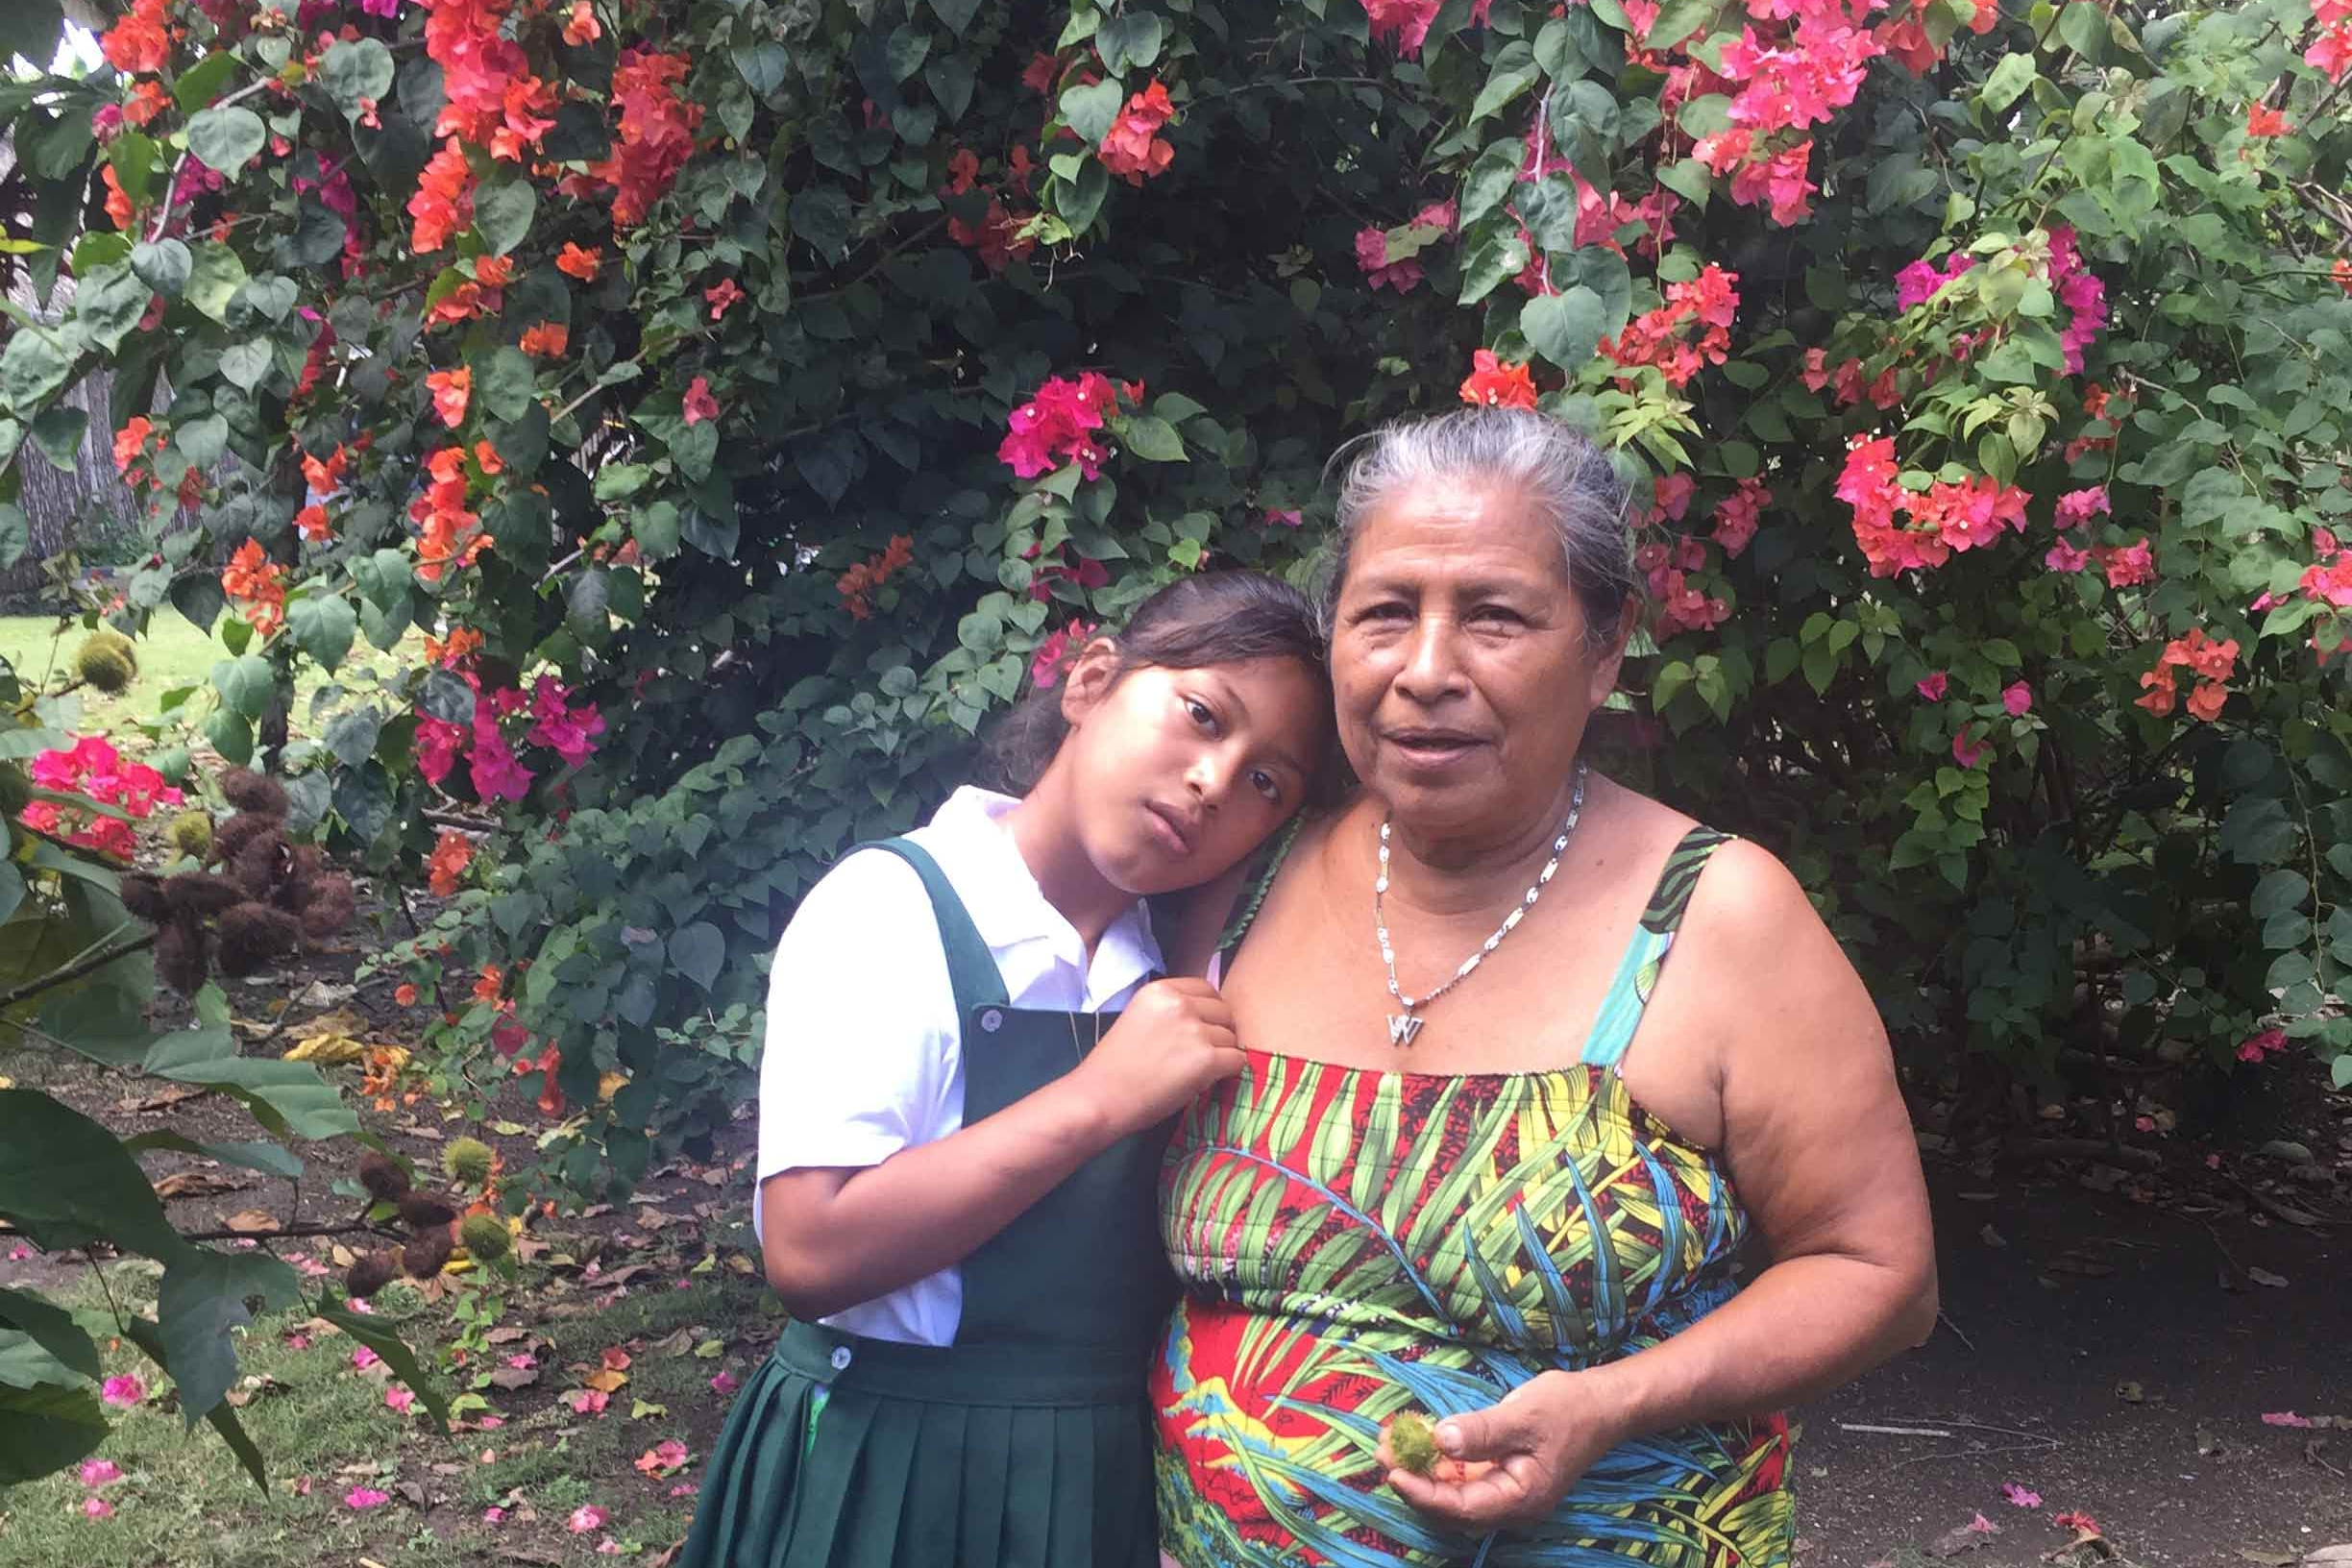 Josefa (R) had to leave school after third grade to help her widowed mother. She hopes that her granddaughter, Kathia (L), who is now in elementary school, will have more access to education than she did.